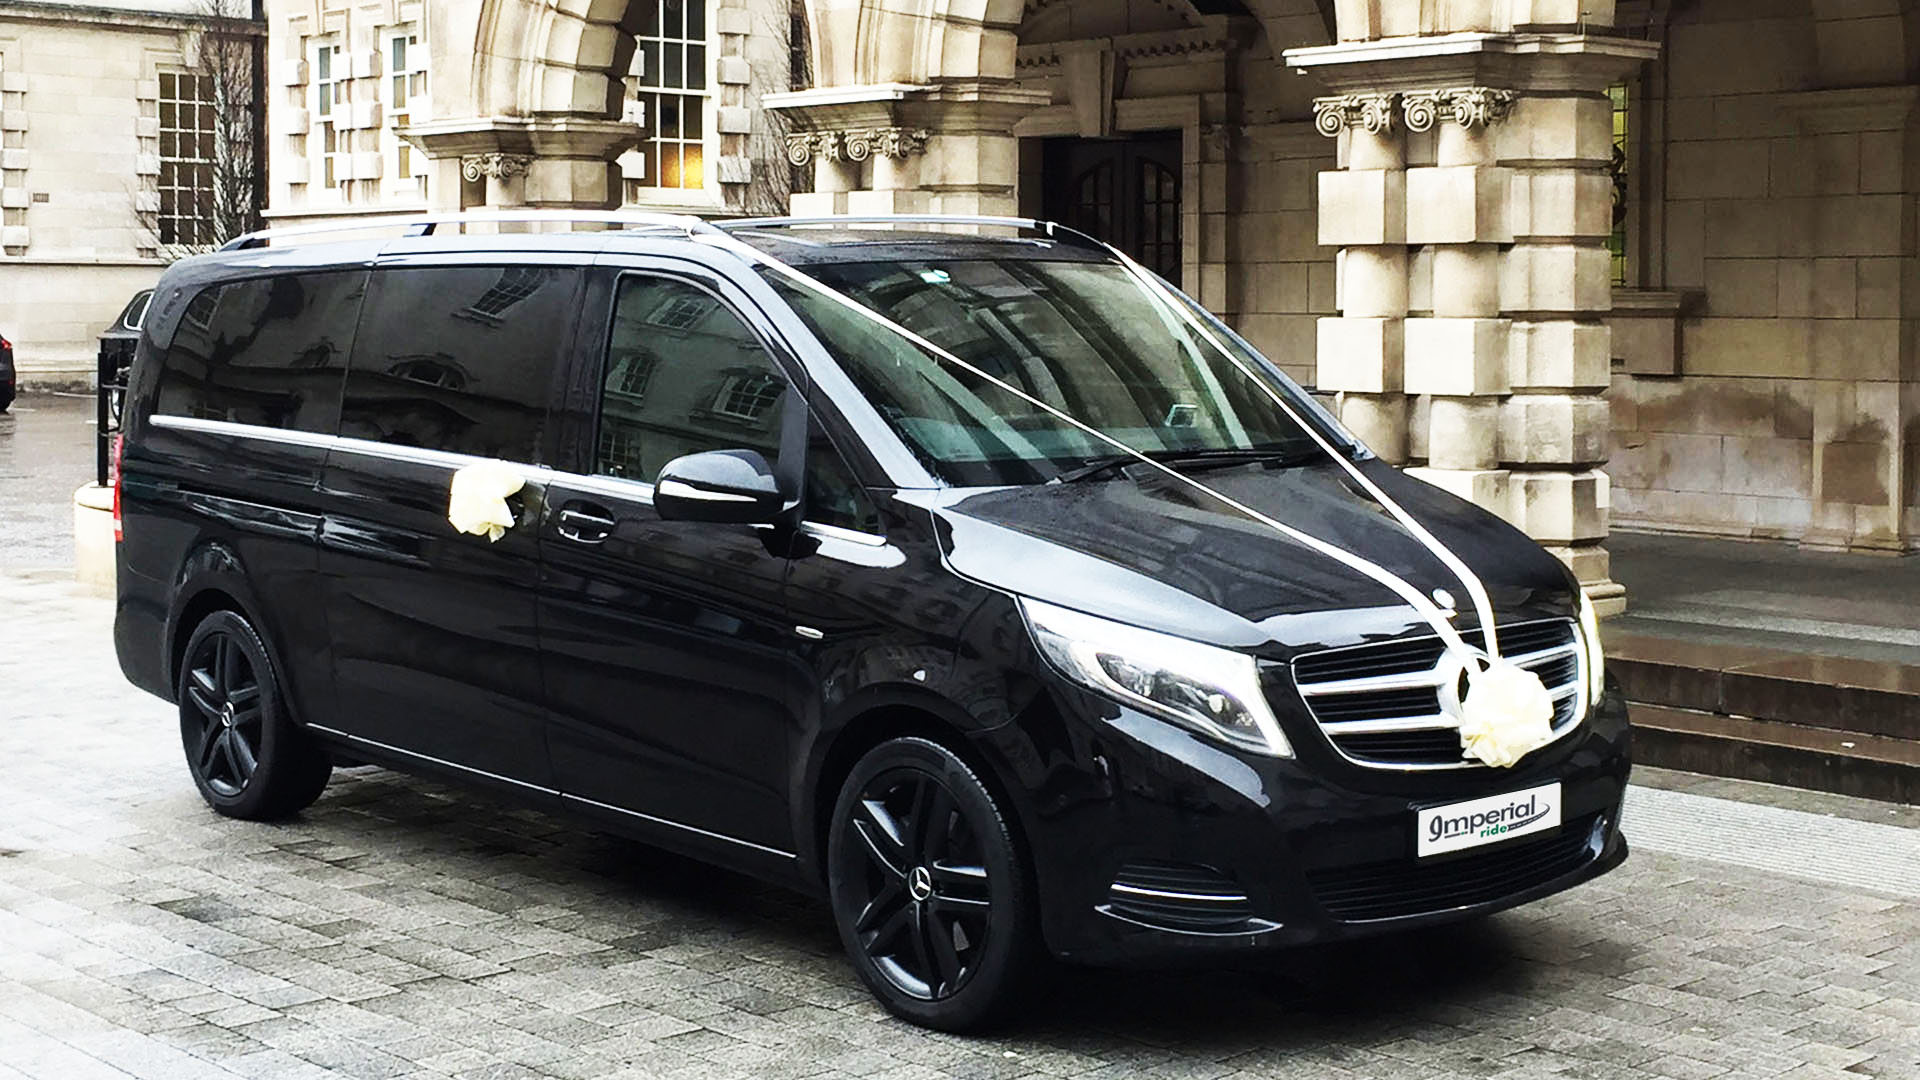 v-class-wedding-hire-in-lambeth